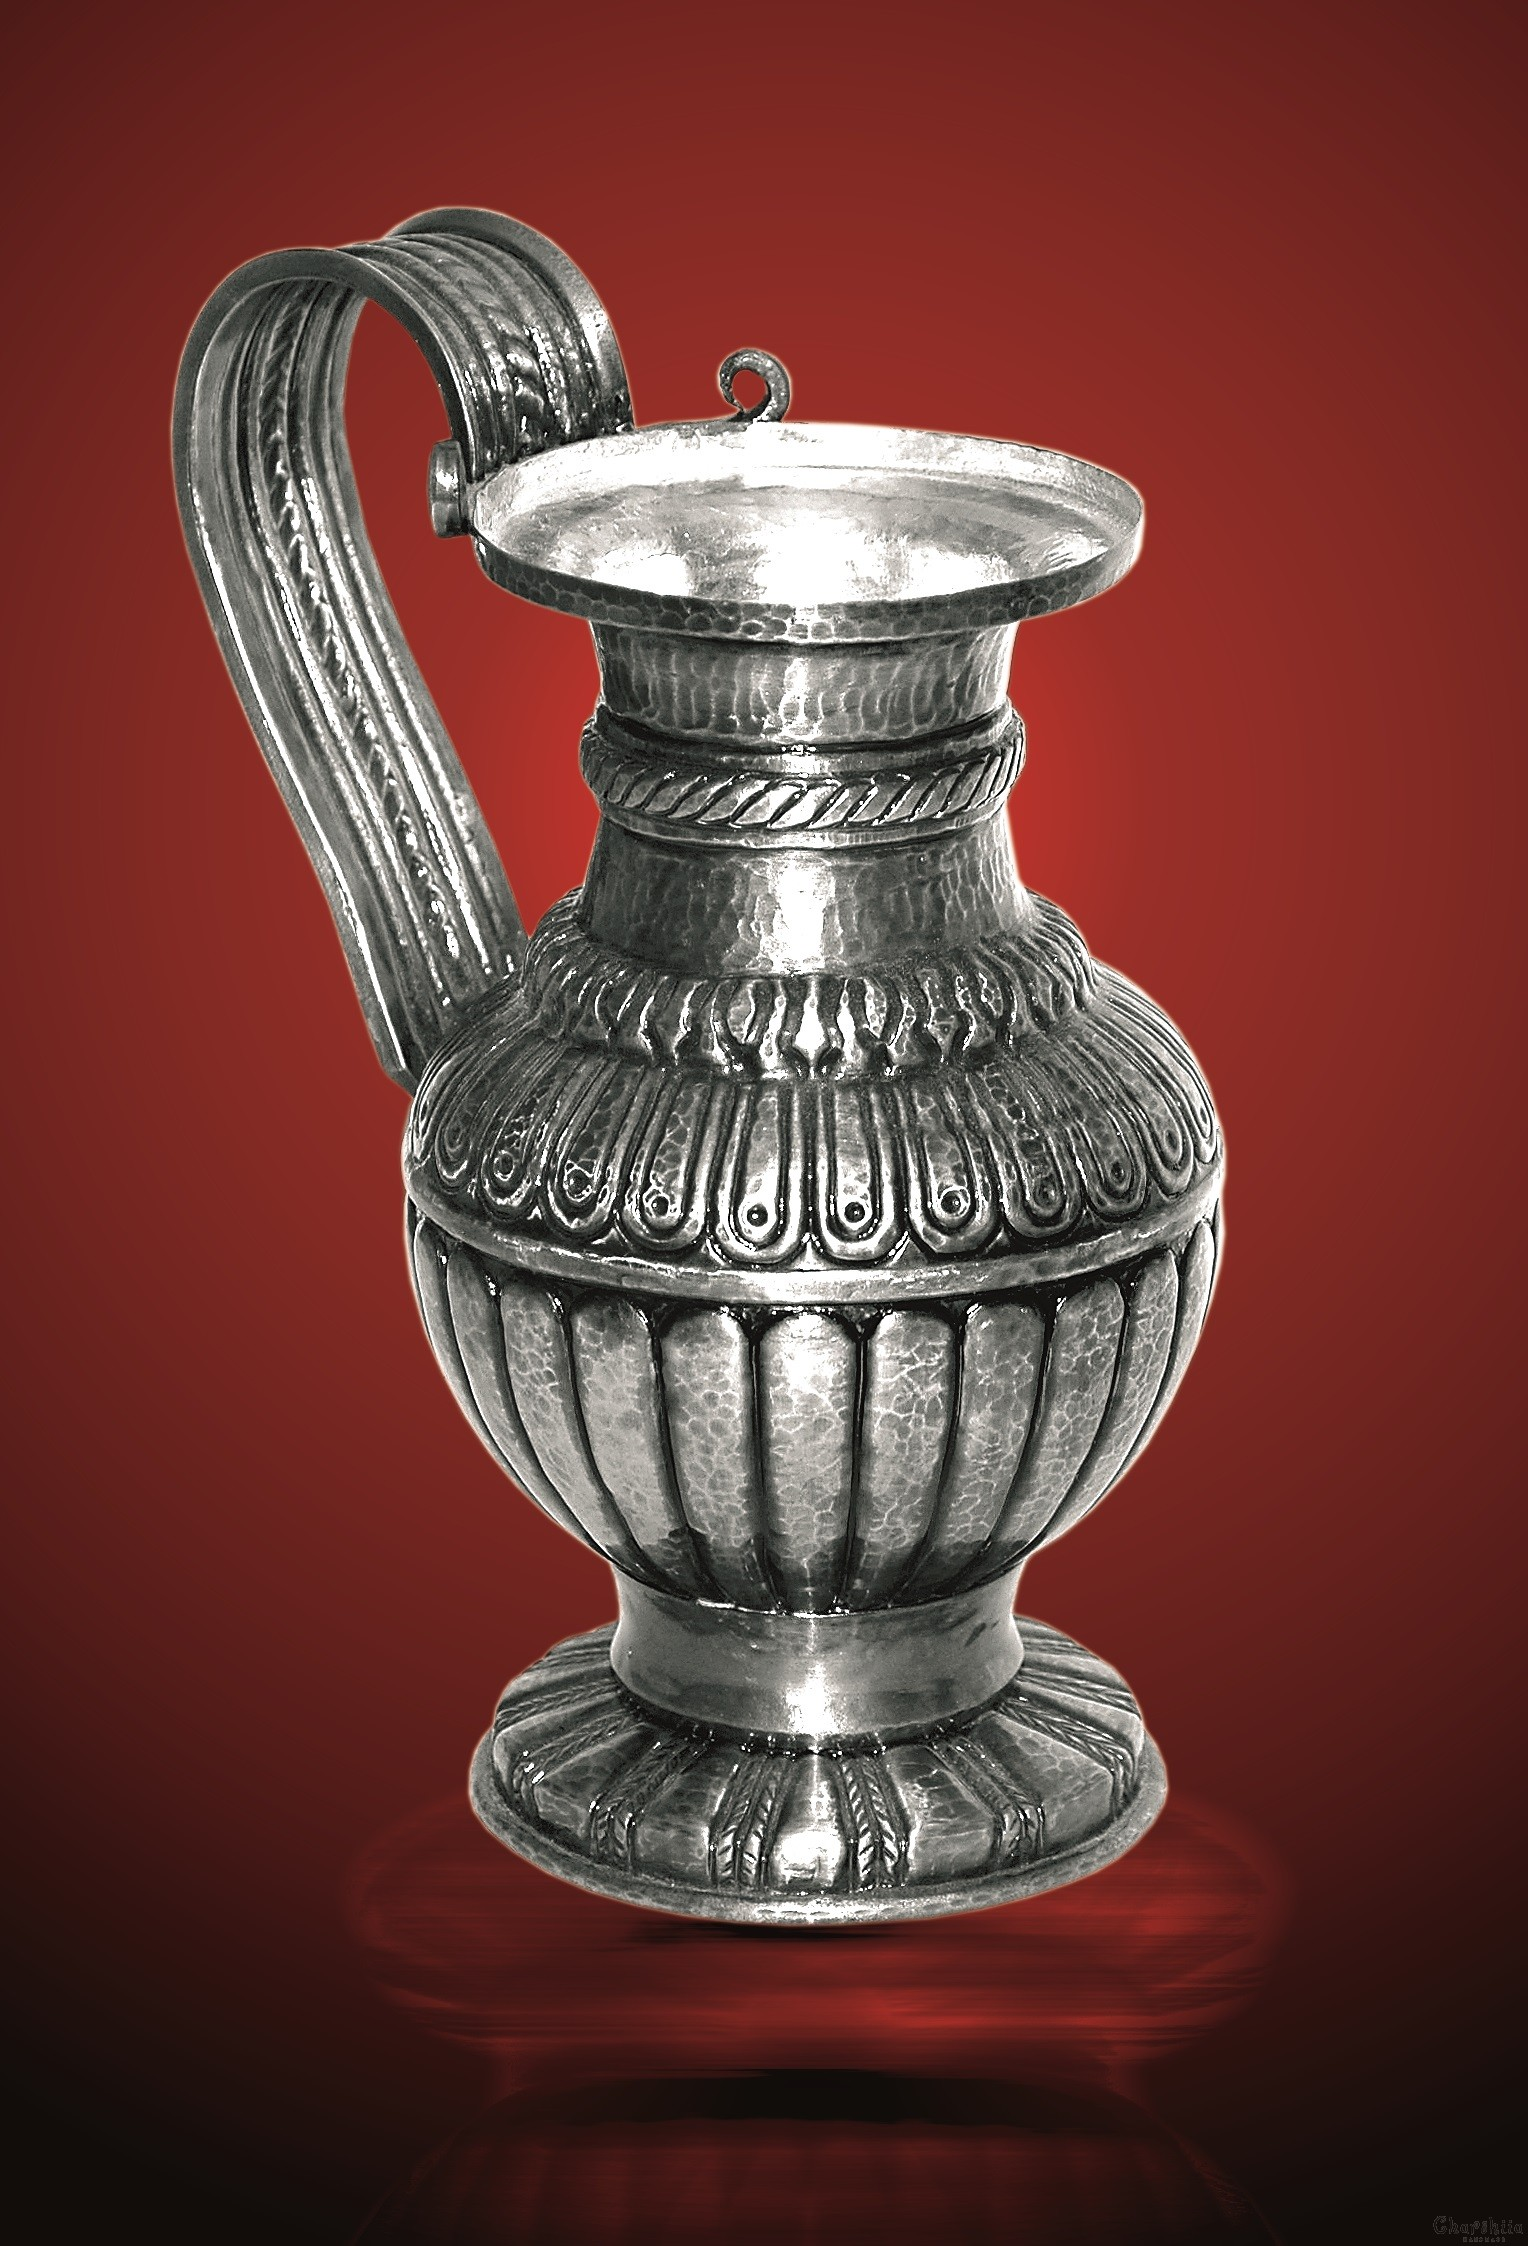 Copper relief, silver coated, jug, a partial replica of the jug from the Rogozen treasure